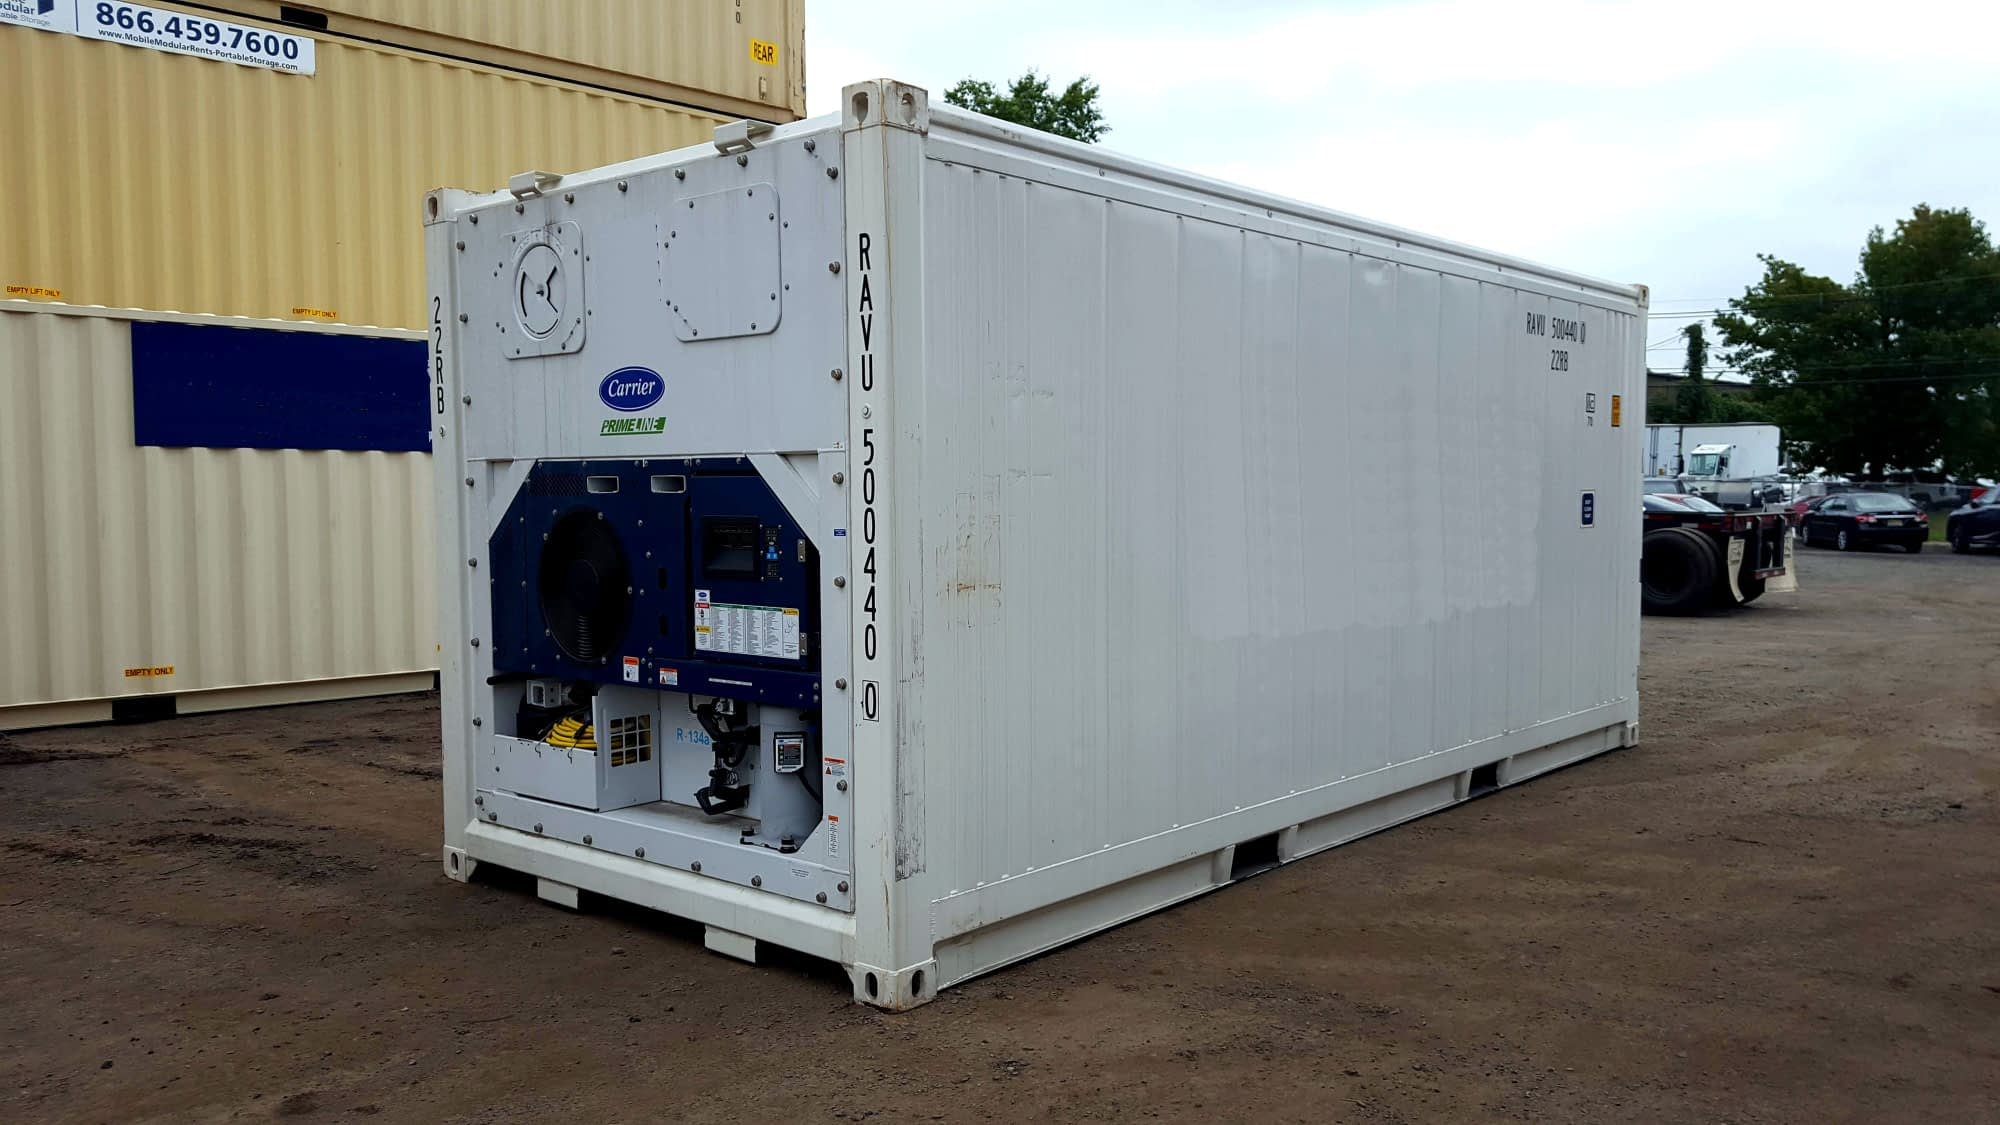 TRS sells new running refrigeration ocntainers in 20ft and 40ft lengths.